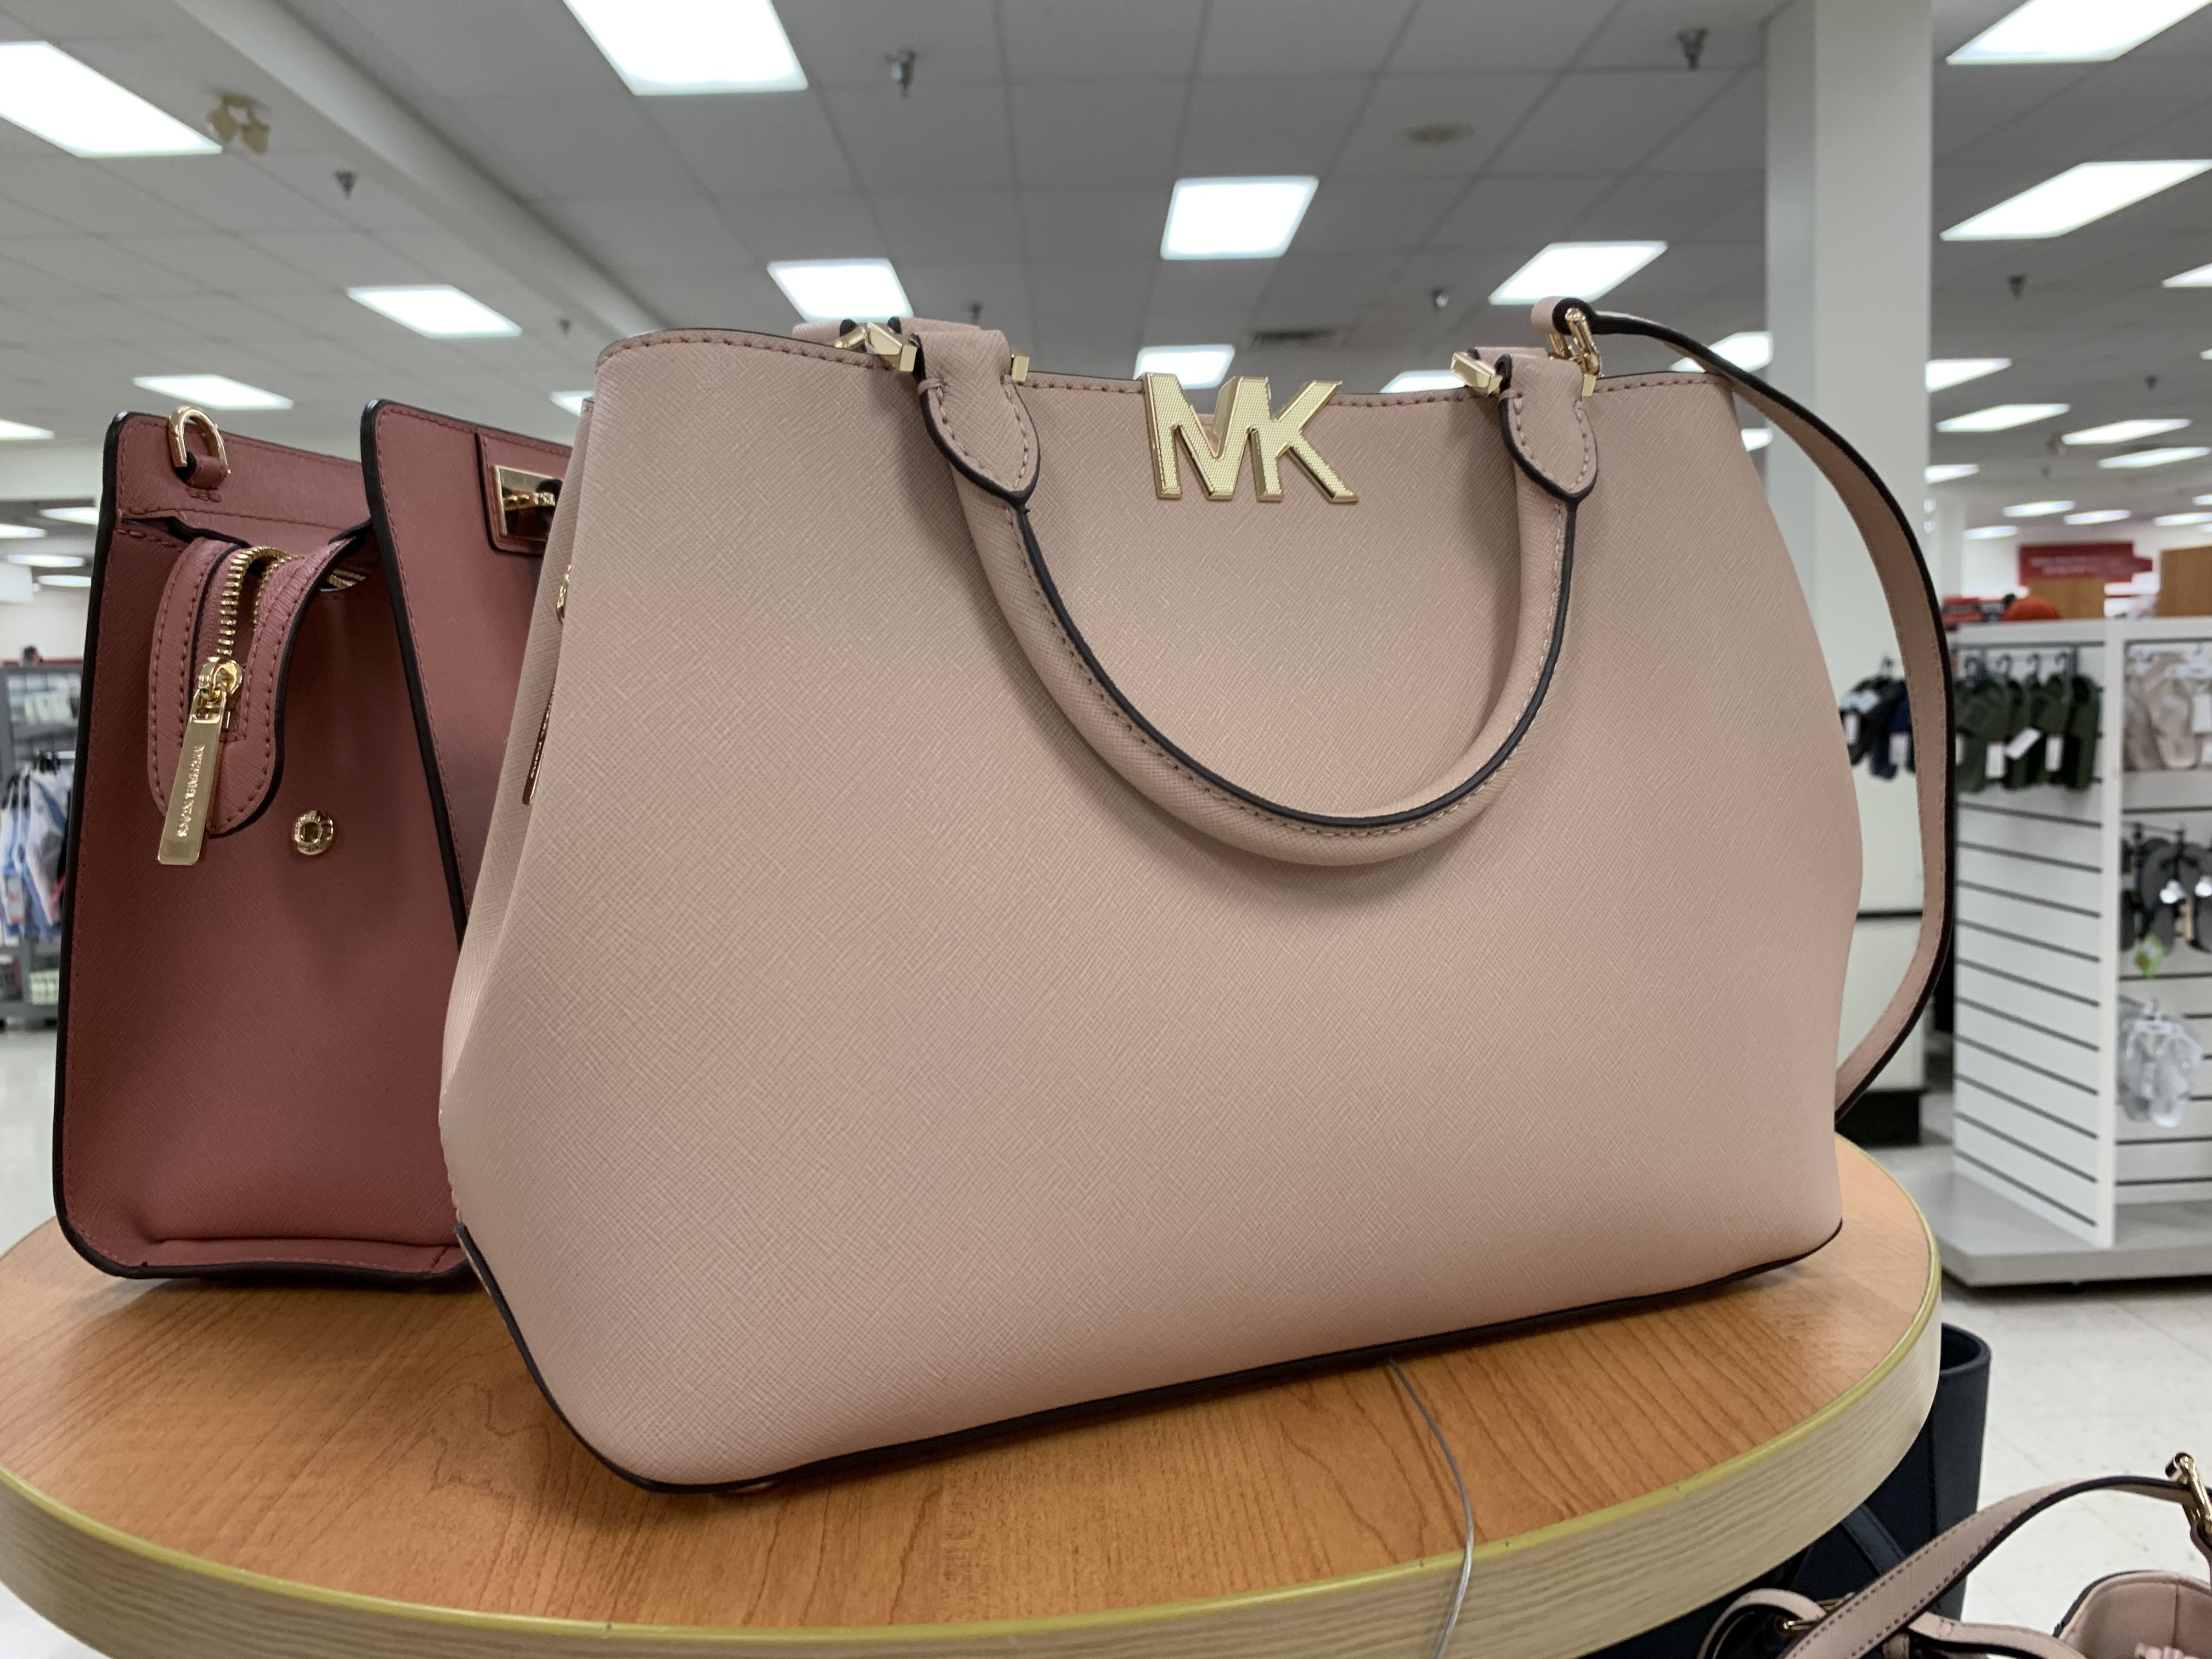 high fashion amazing price new style bag, pink, cute, michael kors, purse - Wheretoget